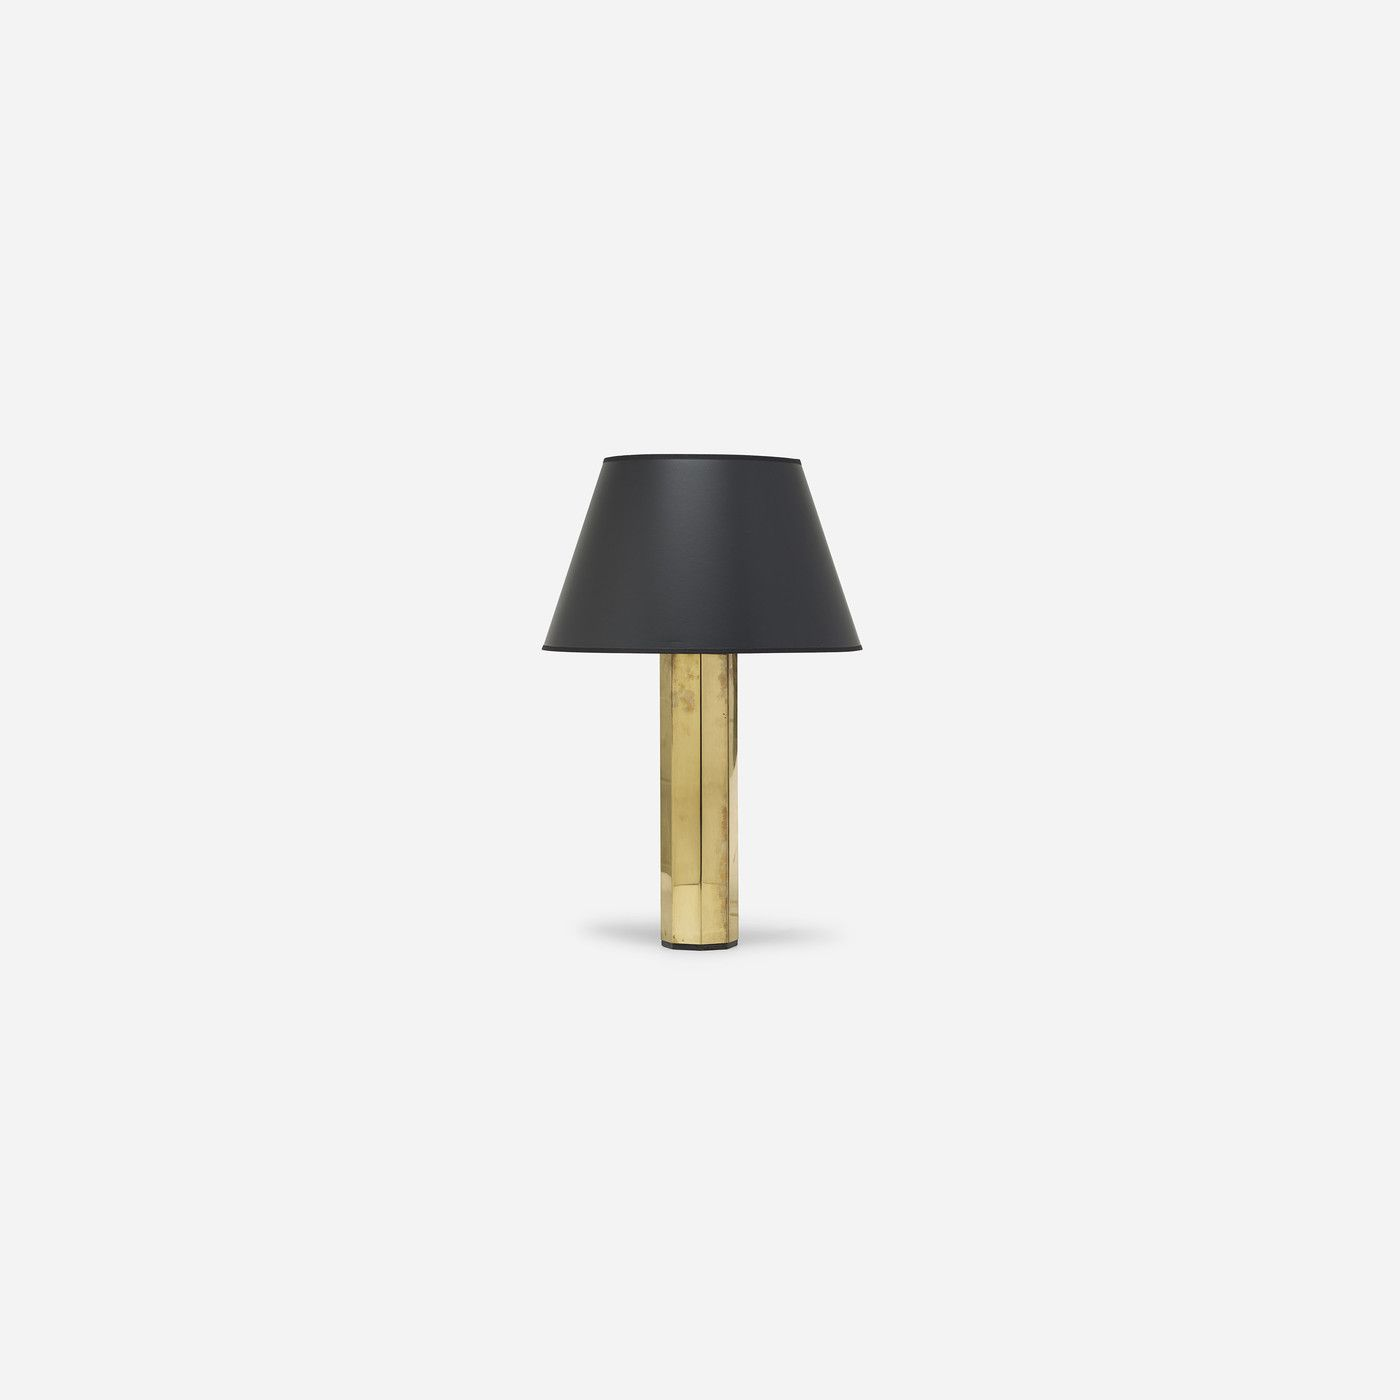 374: Hans-Agne Jakobsson / table lamp < Mass Modern: Day 2, 11 July 2015 < Auctions | Wright